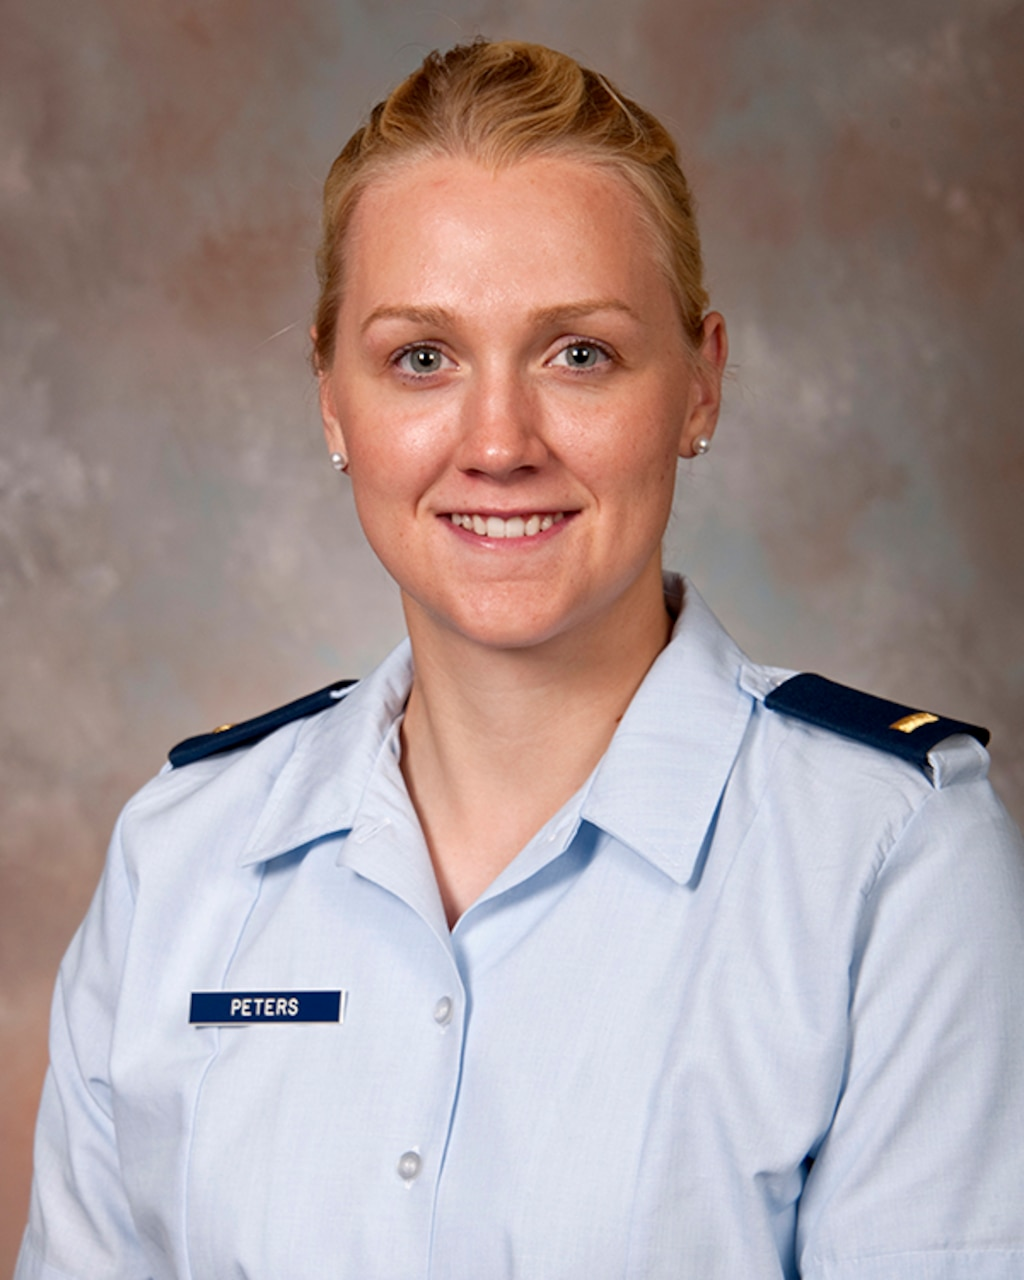 Air Force 2nd Lt. Sidney Peters, who just began her studies as a first-year medical student at the Uniformed Services University of the Health Sciences in Bethesda, Md., has been named as one of the NCAA's Top 30 Woman of the Year honorees. Uniformed Services University of the Health Sciences photo by Tom Balfour